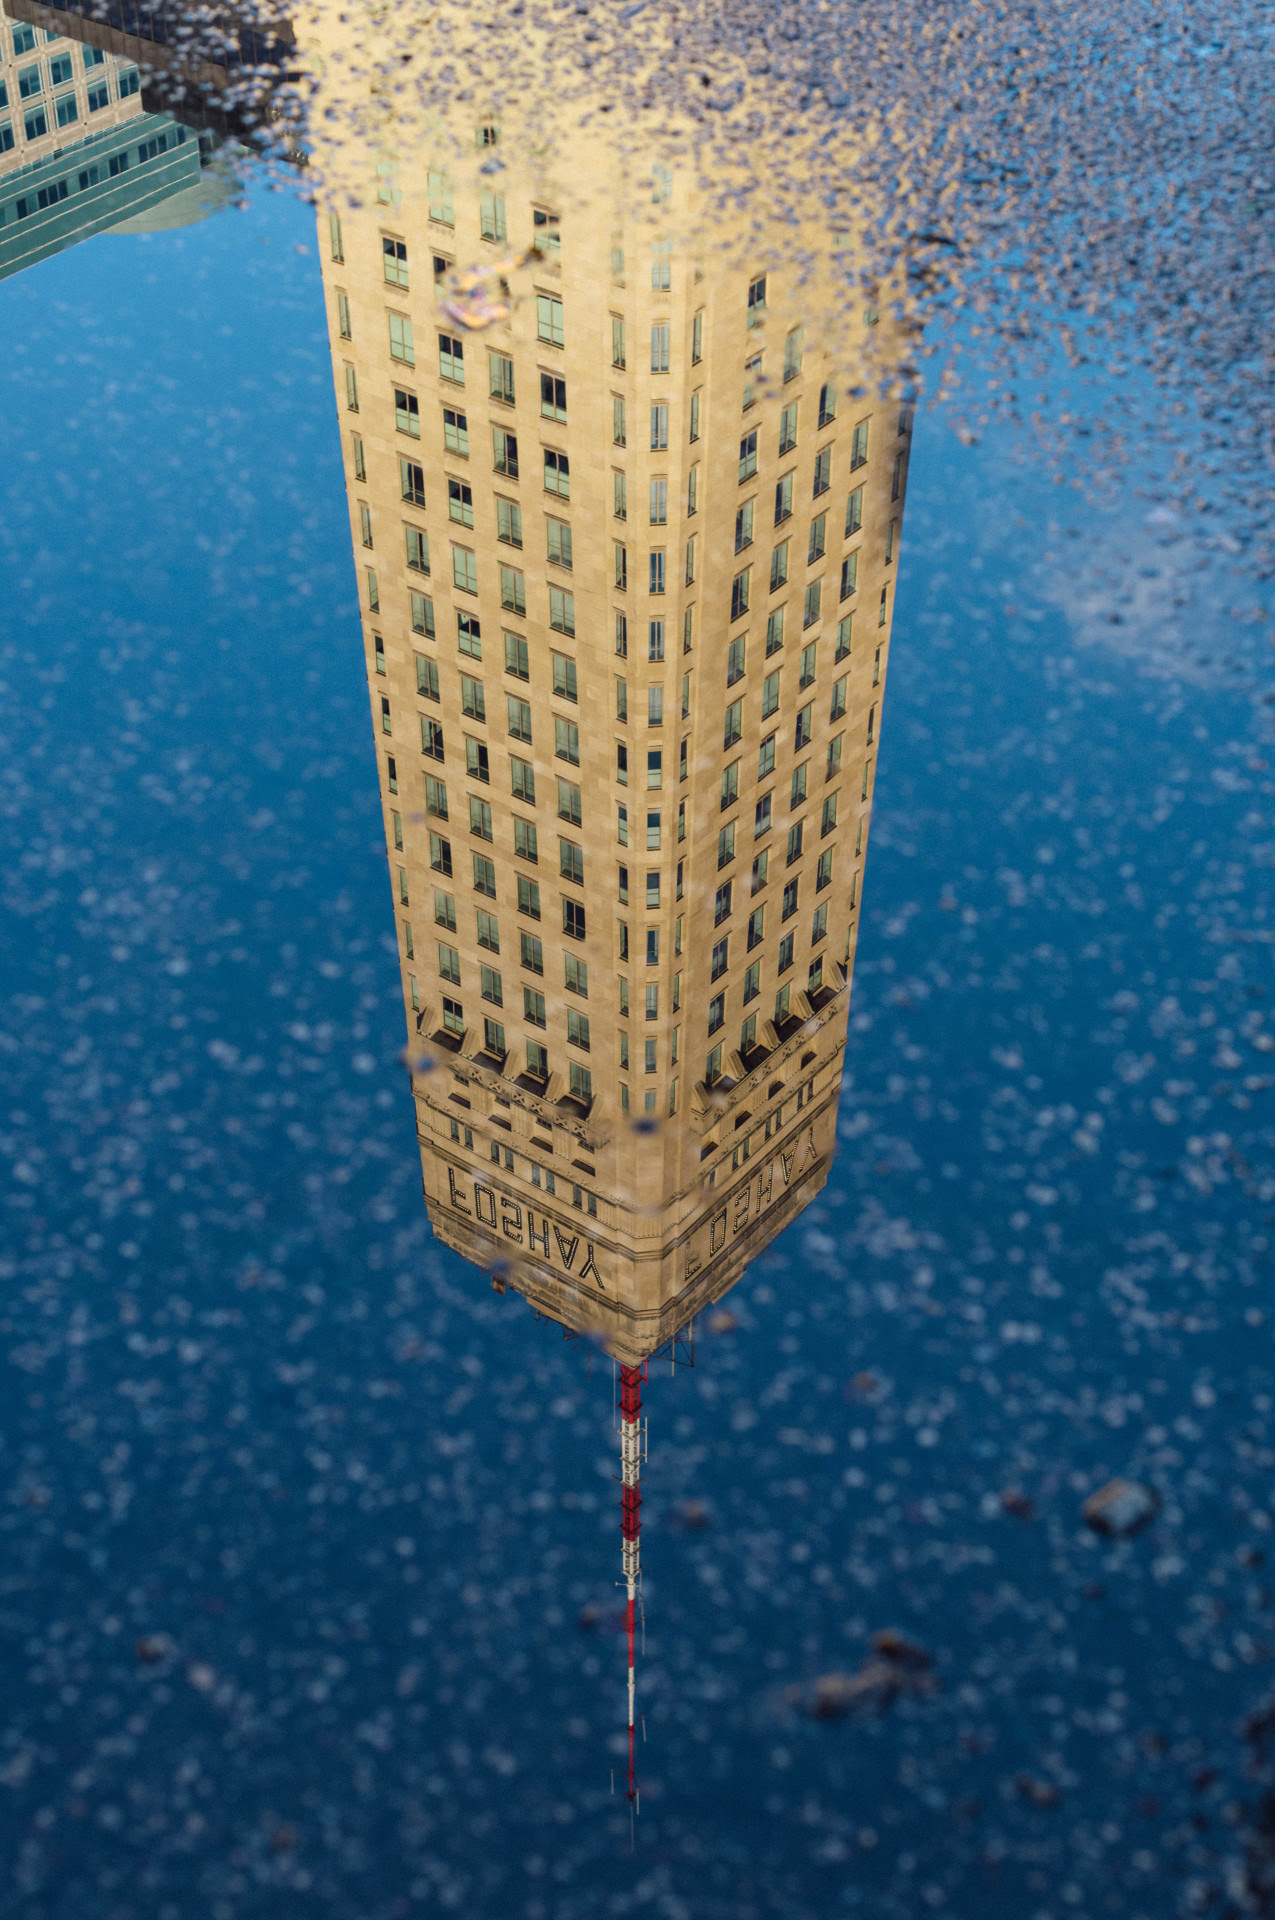 http://stuffaboutminneapolis.tumblr.com/post/141366653424/carterwdick-foshay-tower-reflection-downtown